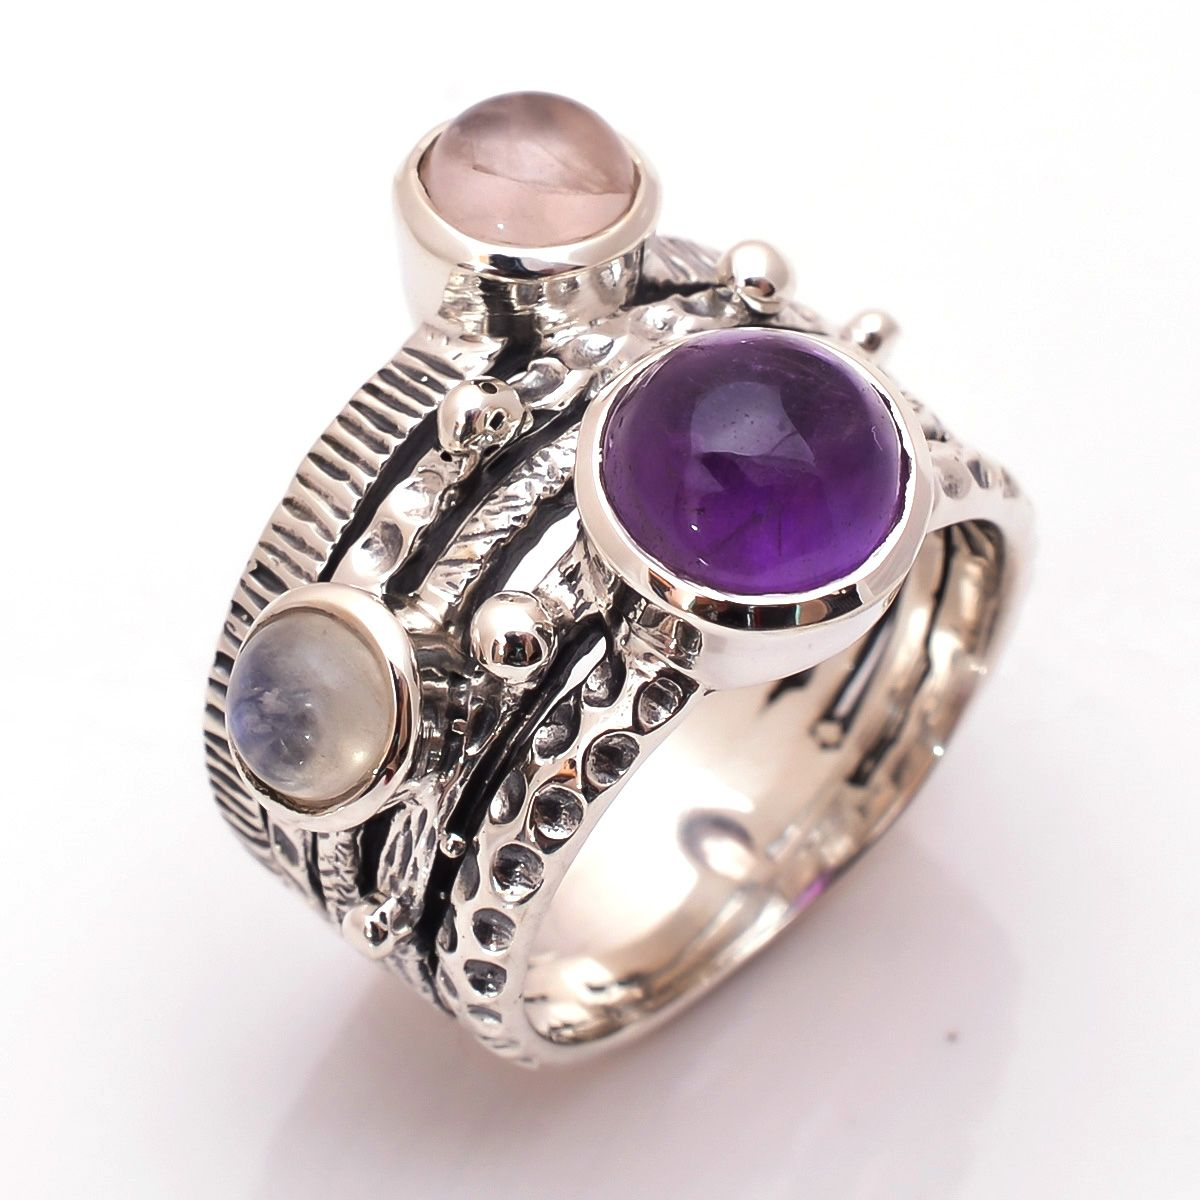 Amethyst Rose Quartz Rainbow Moonstone 925 Sterling Silver Ring Size 8